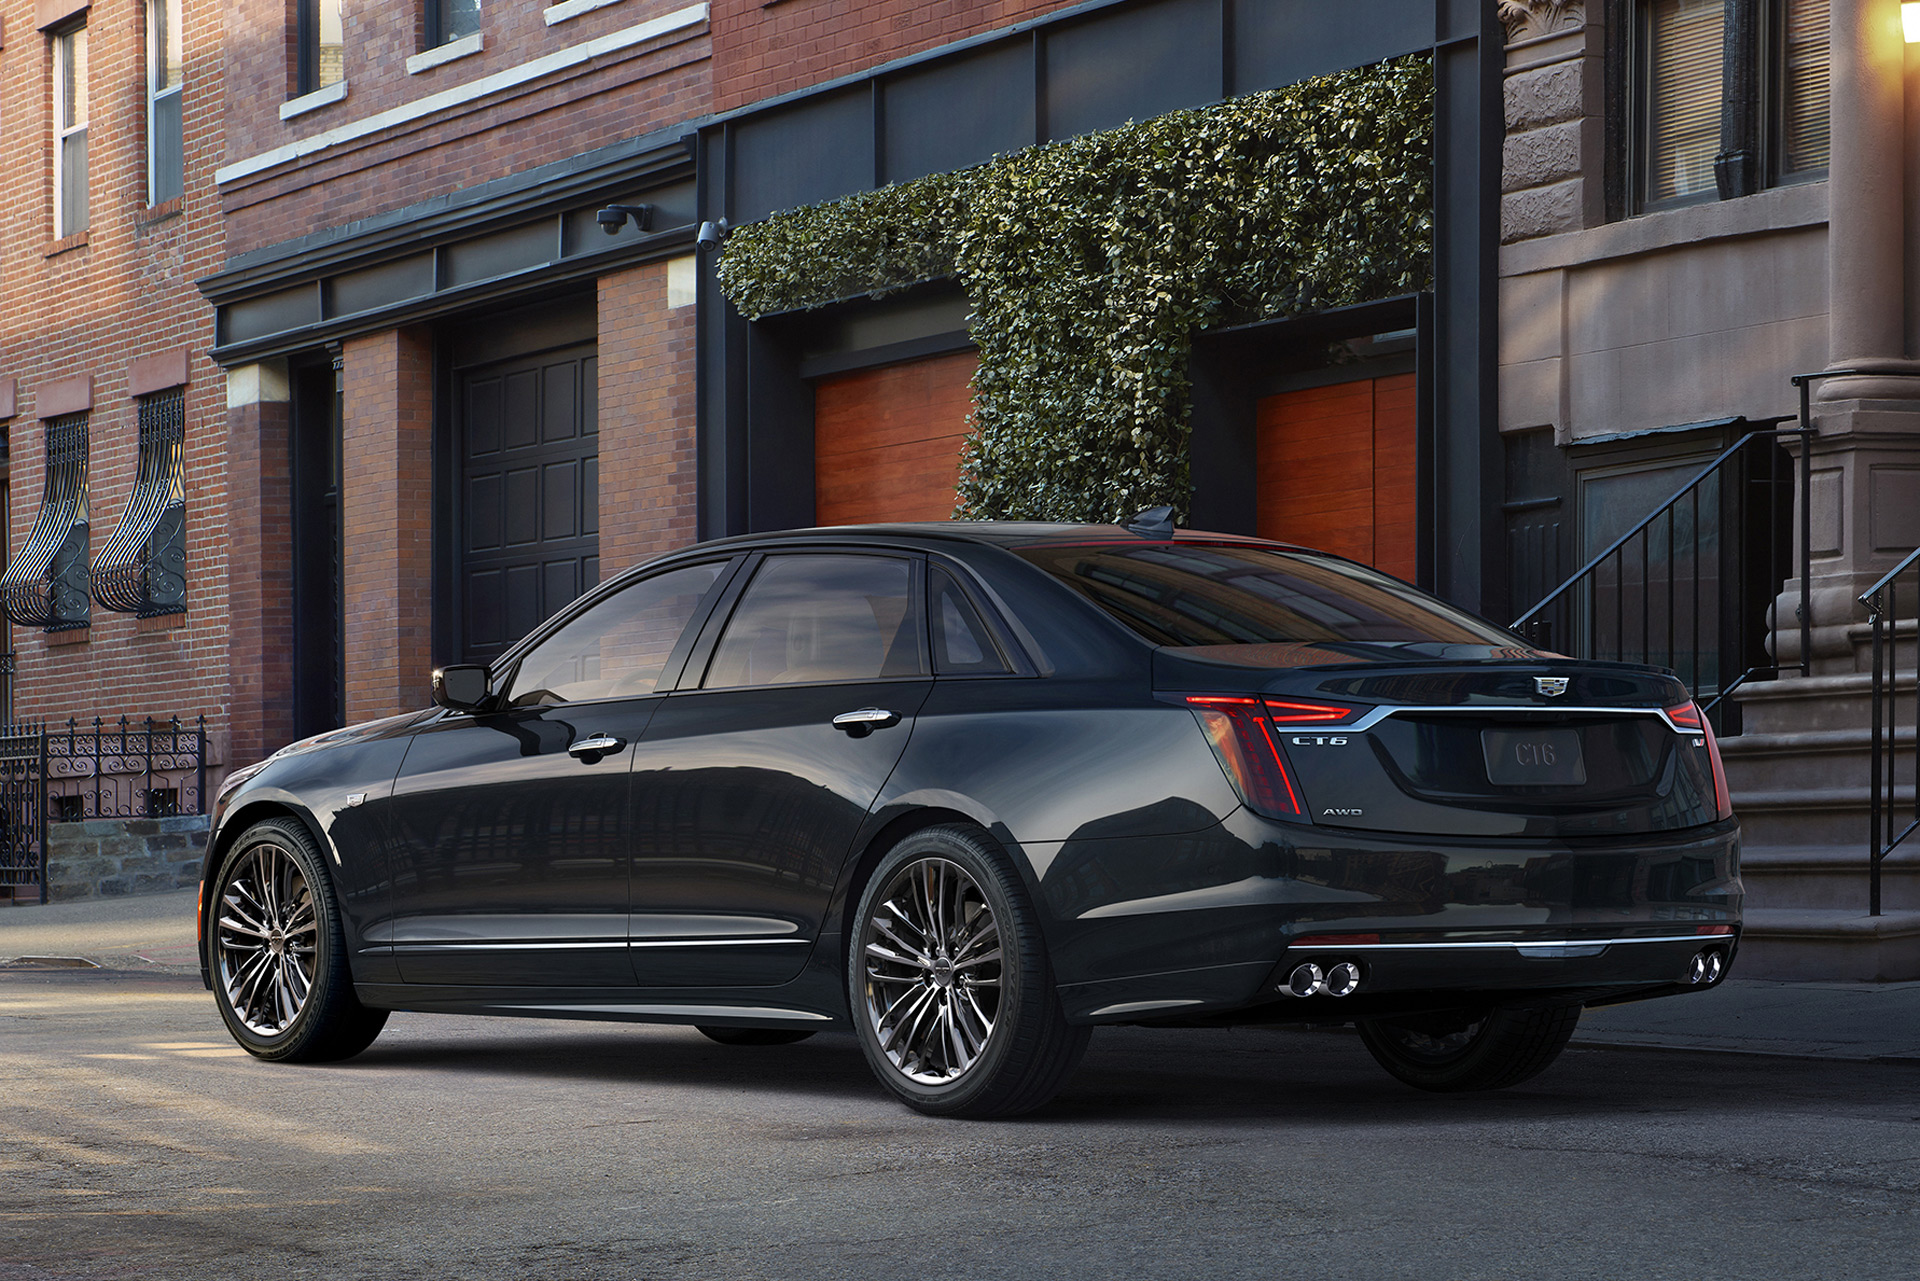 22 All New 2020 Cadillac CT6 Picture